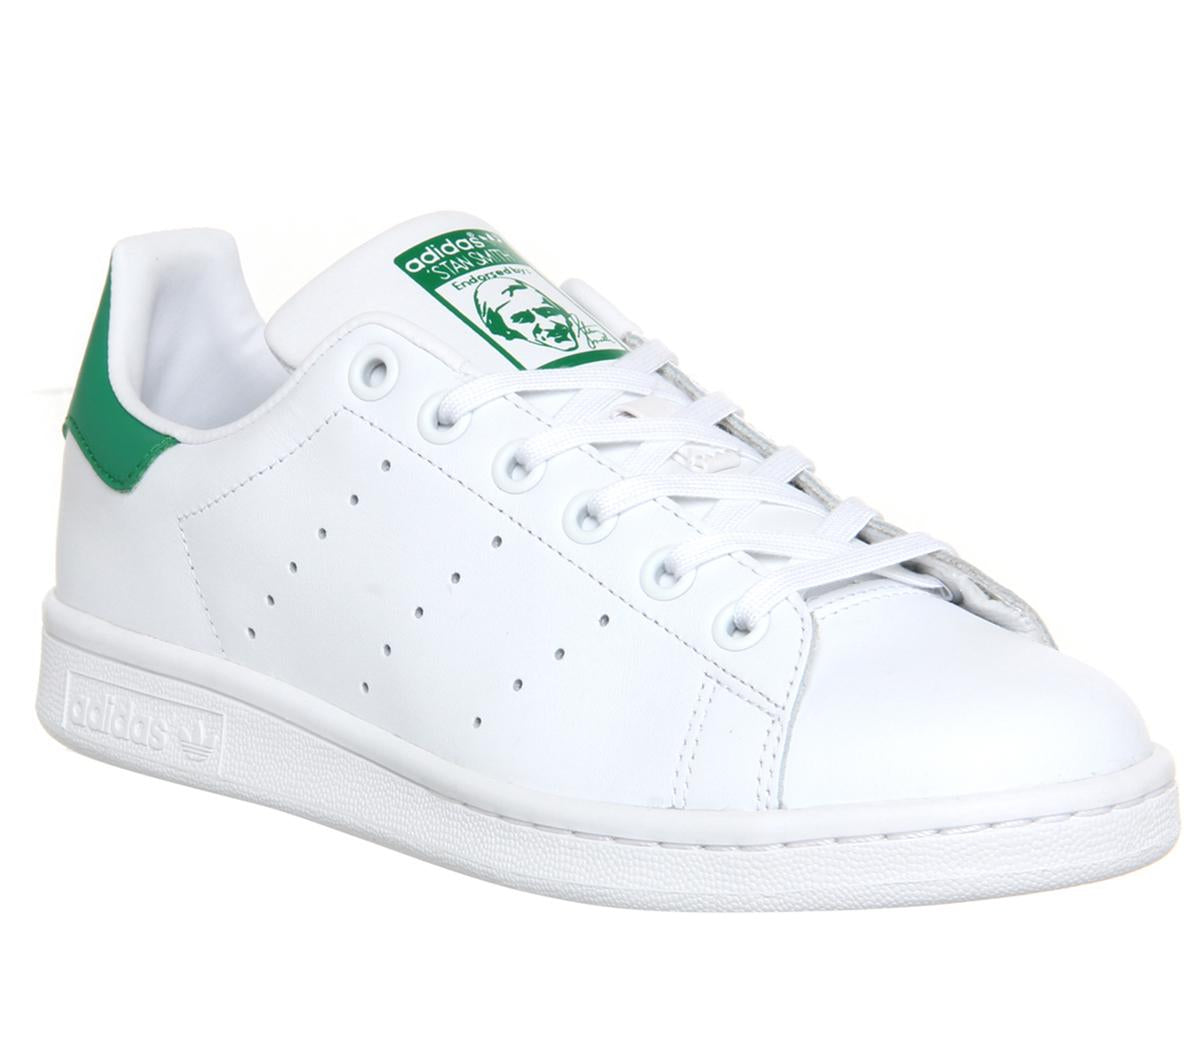 buy online 66bc6 b888f Womens Adidas Stan Smith Gs Core White Green Uk Size 3